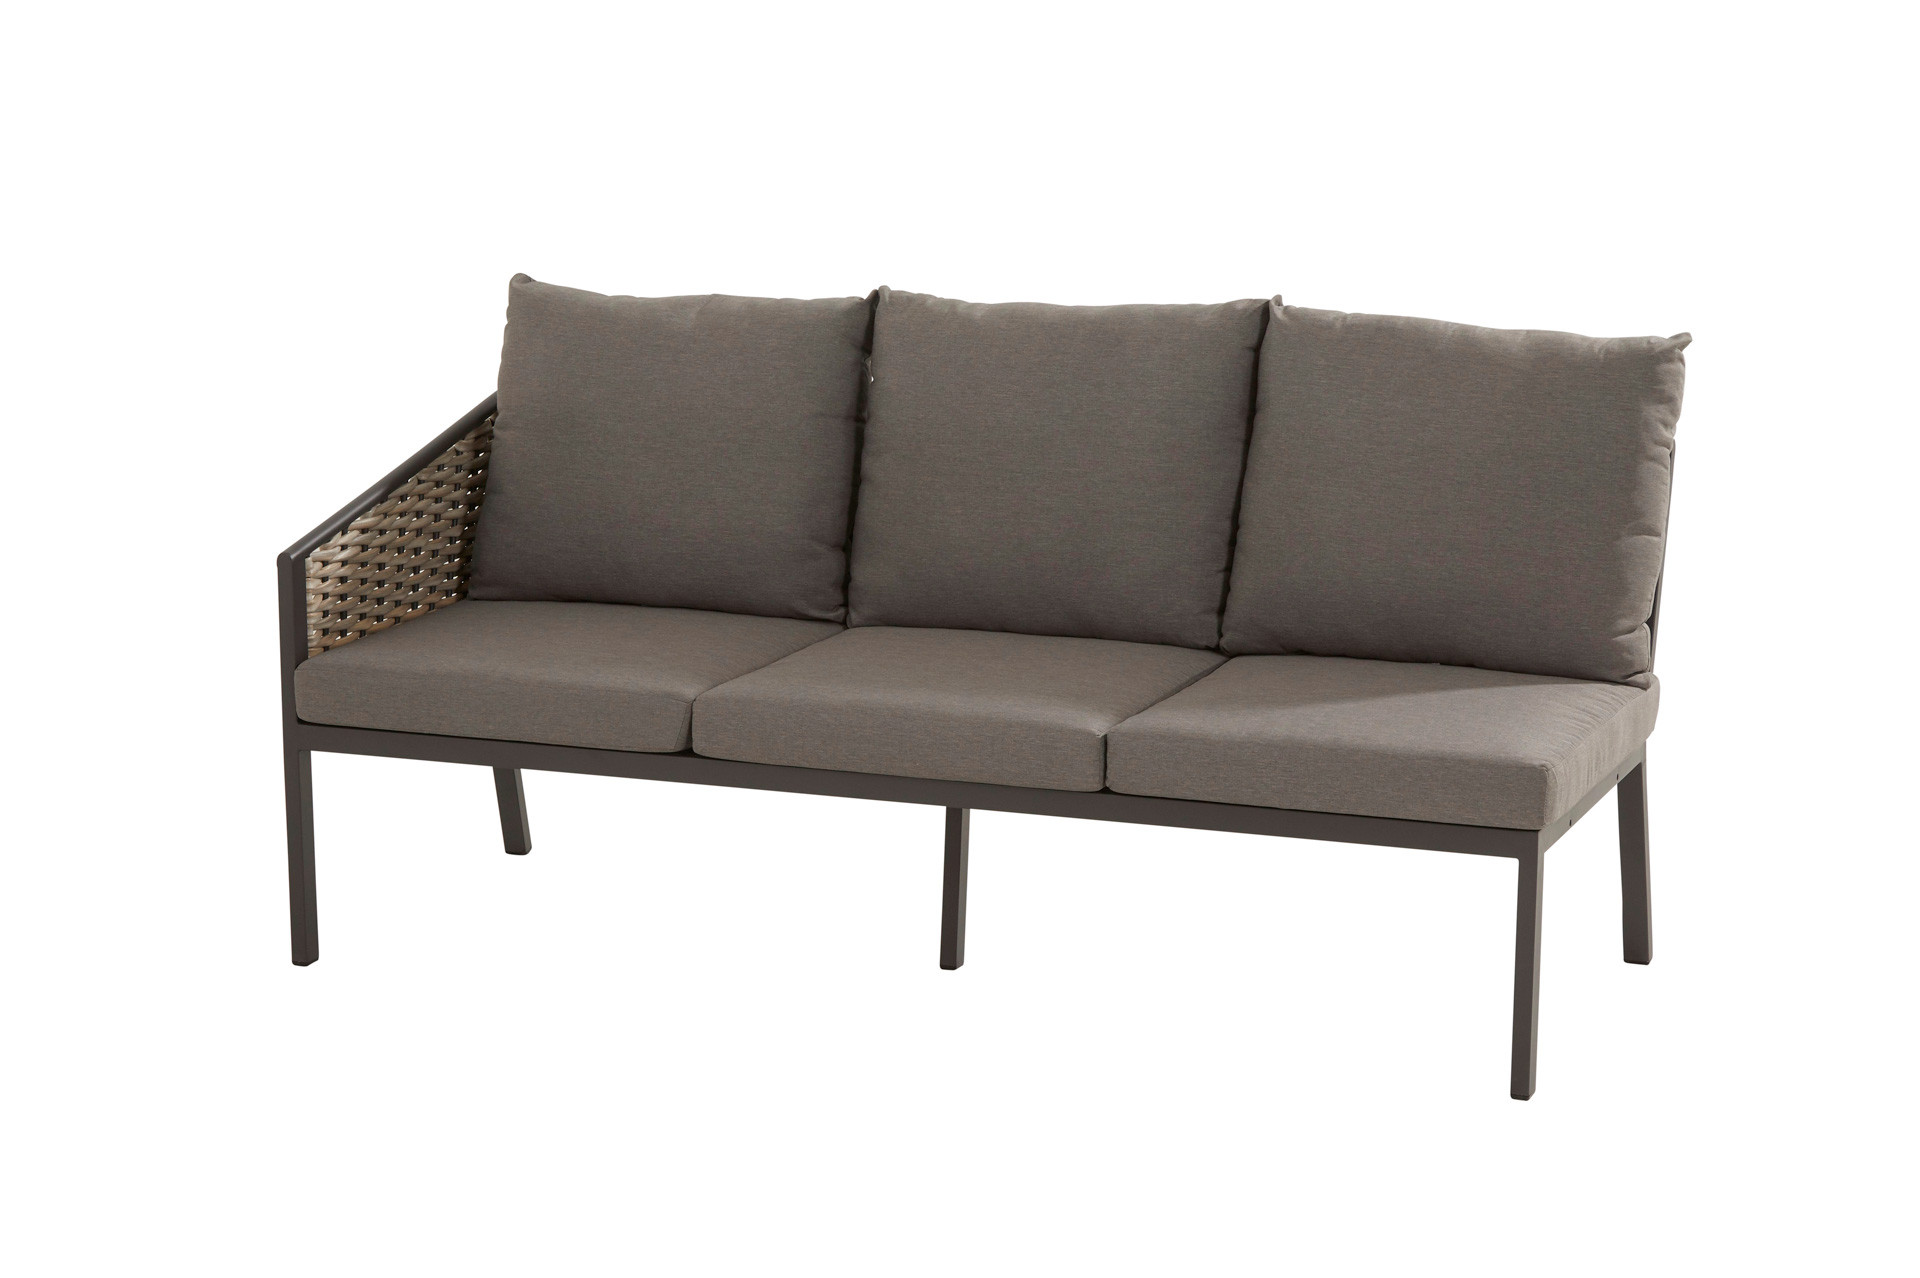 Bo cosy dining 3 seater R arm and 6 cushions